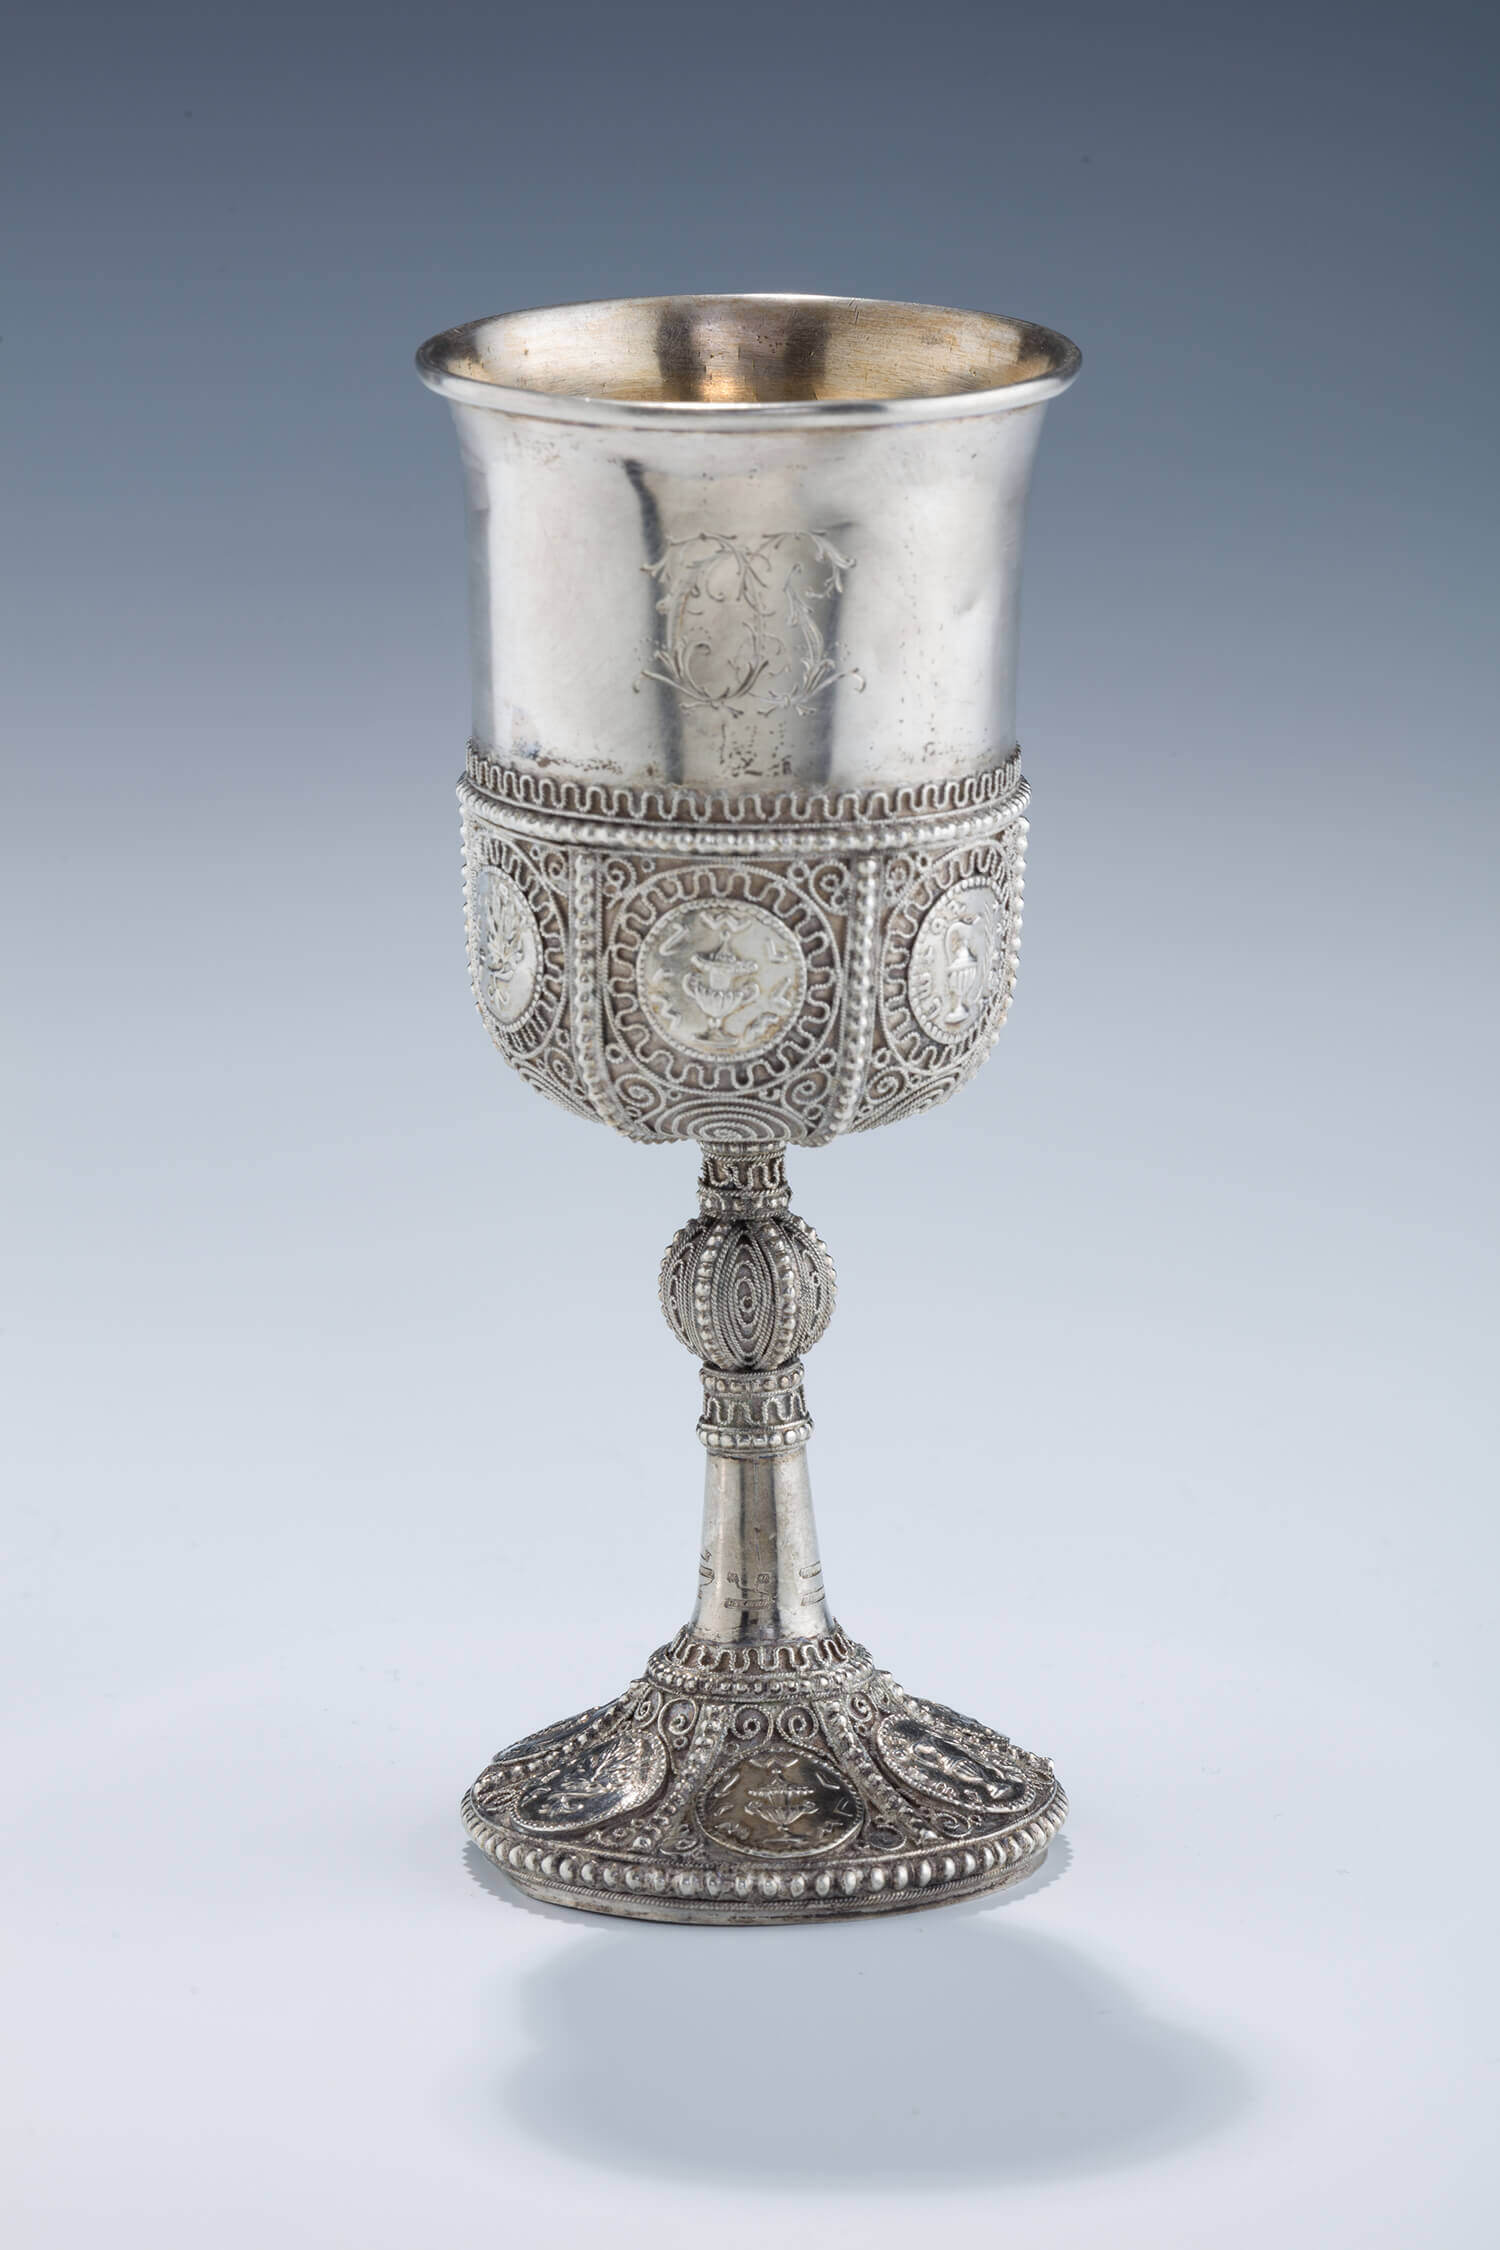 044. AN EARLY AND RARE KIDDUSH GOBLET BY THE BEZALEL SCHOOL